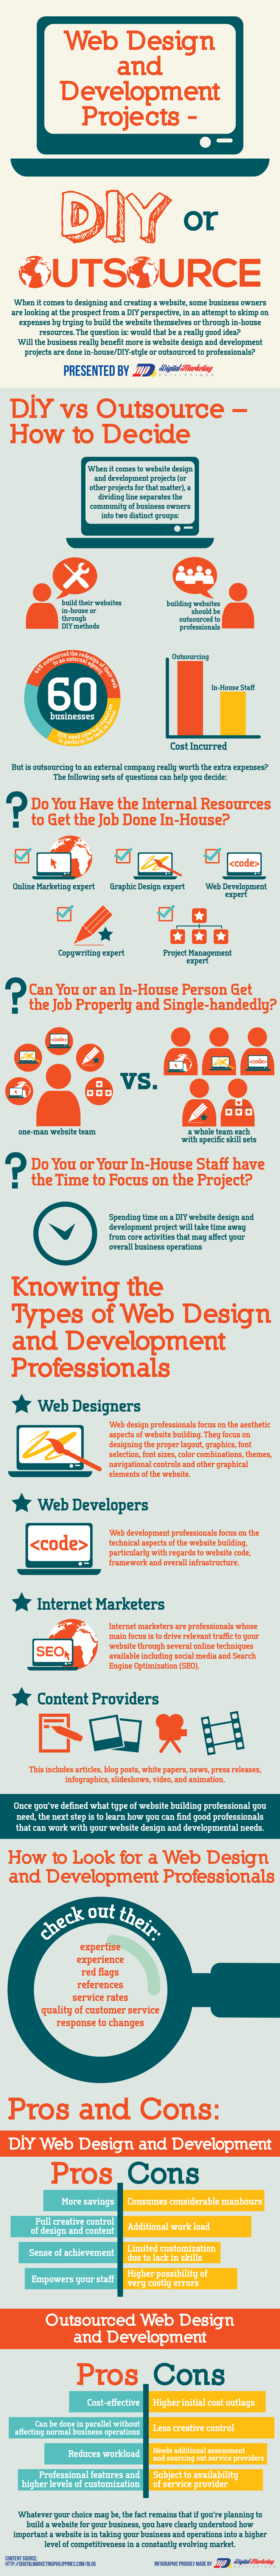 Web Design and Development Projects – DIY or Outsource? (Infographic ...